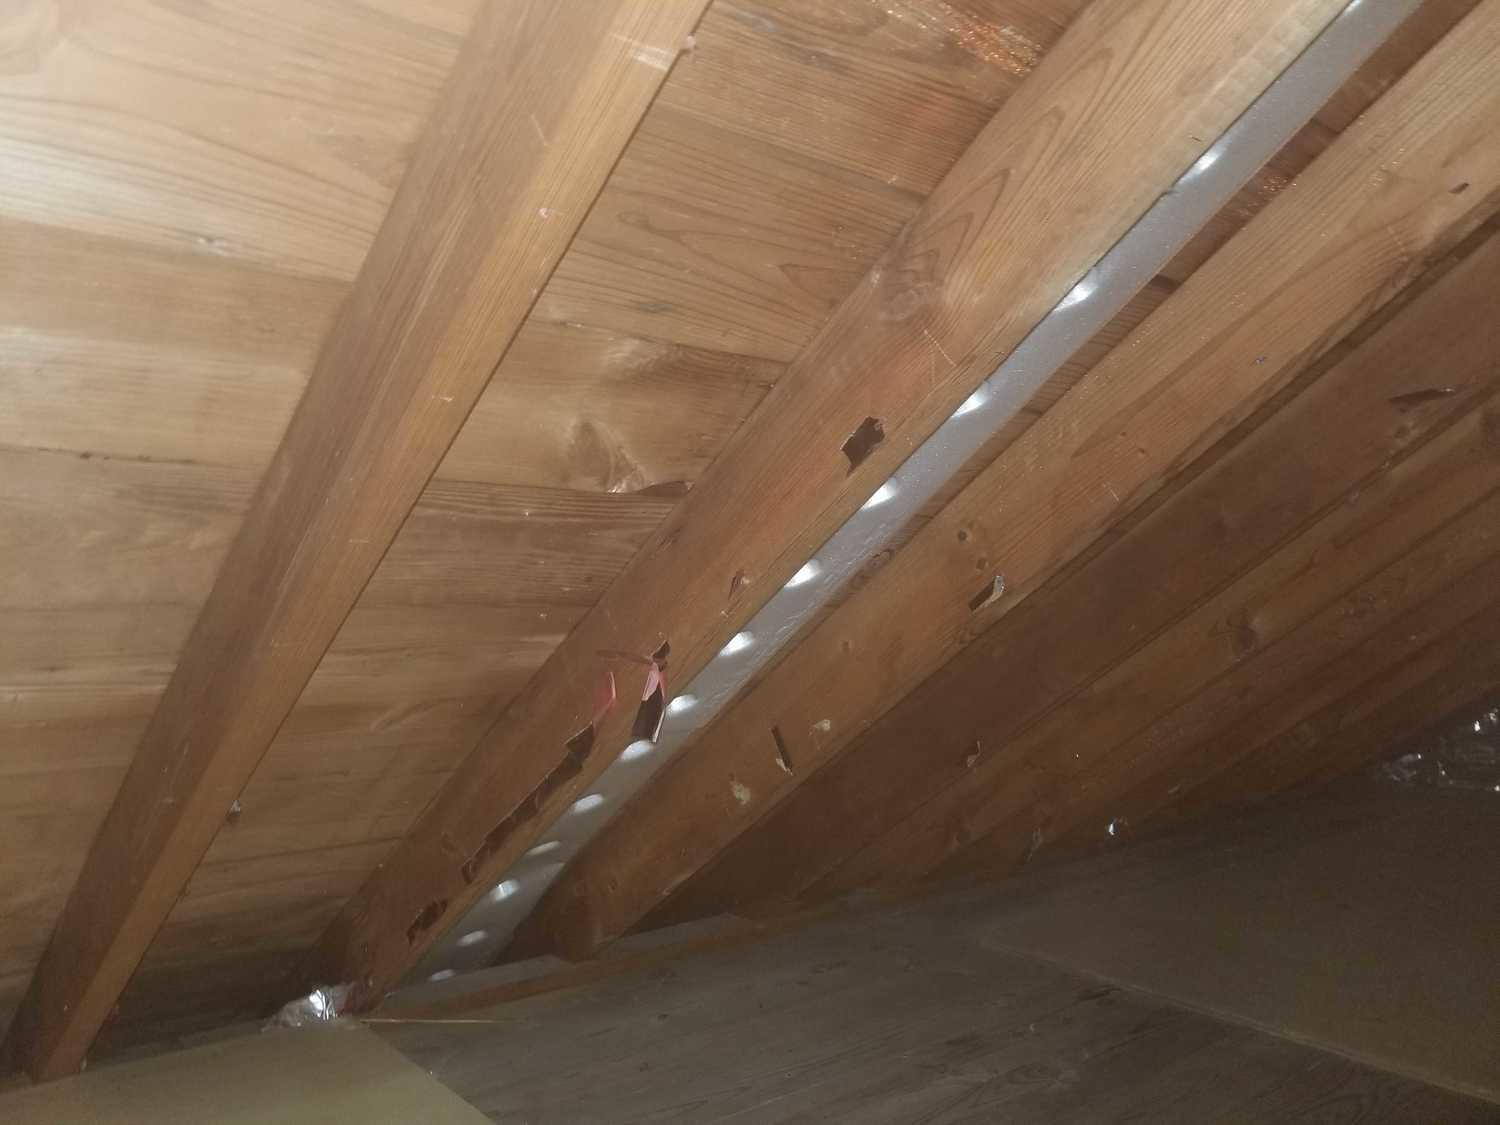 Attic boards after application of stain remover